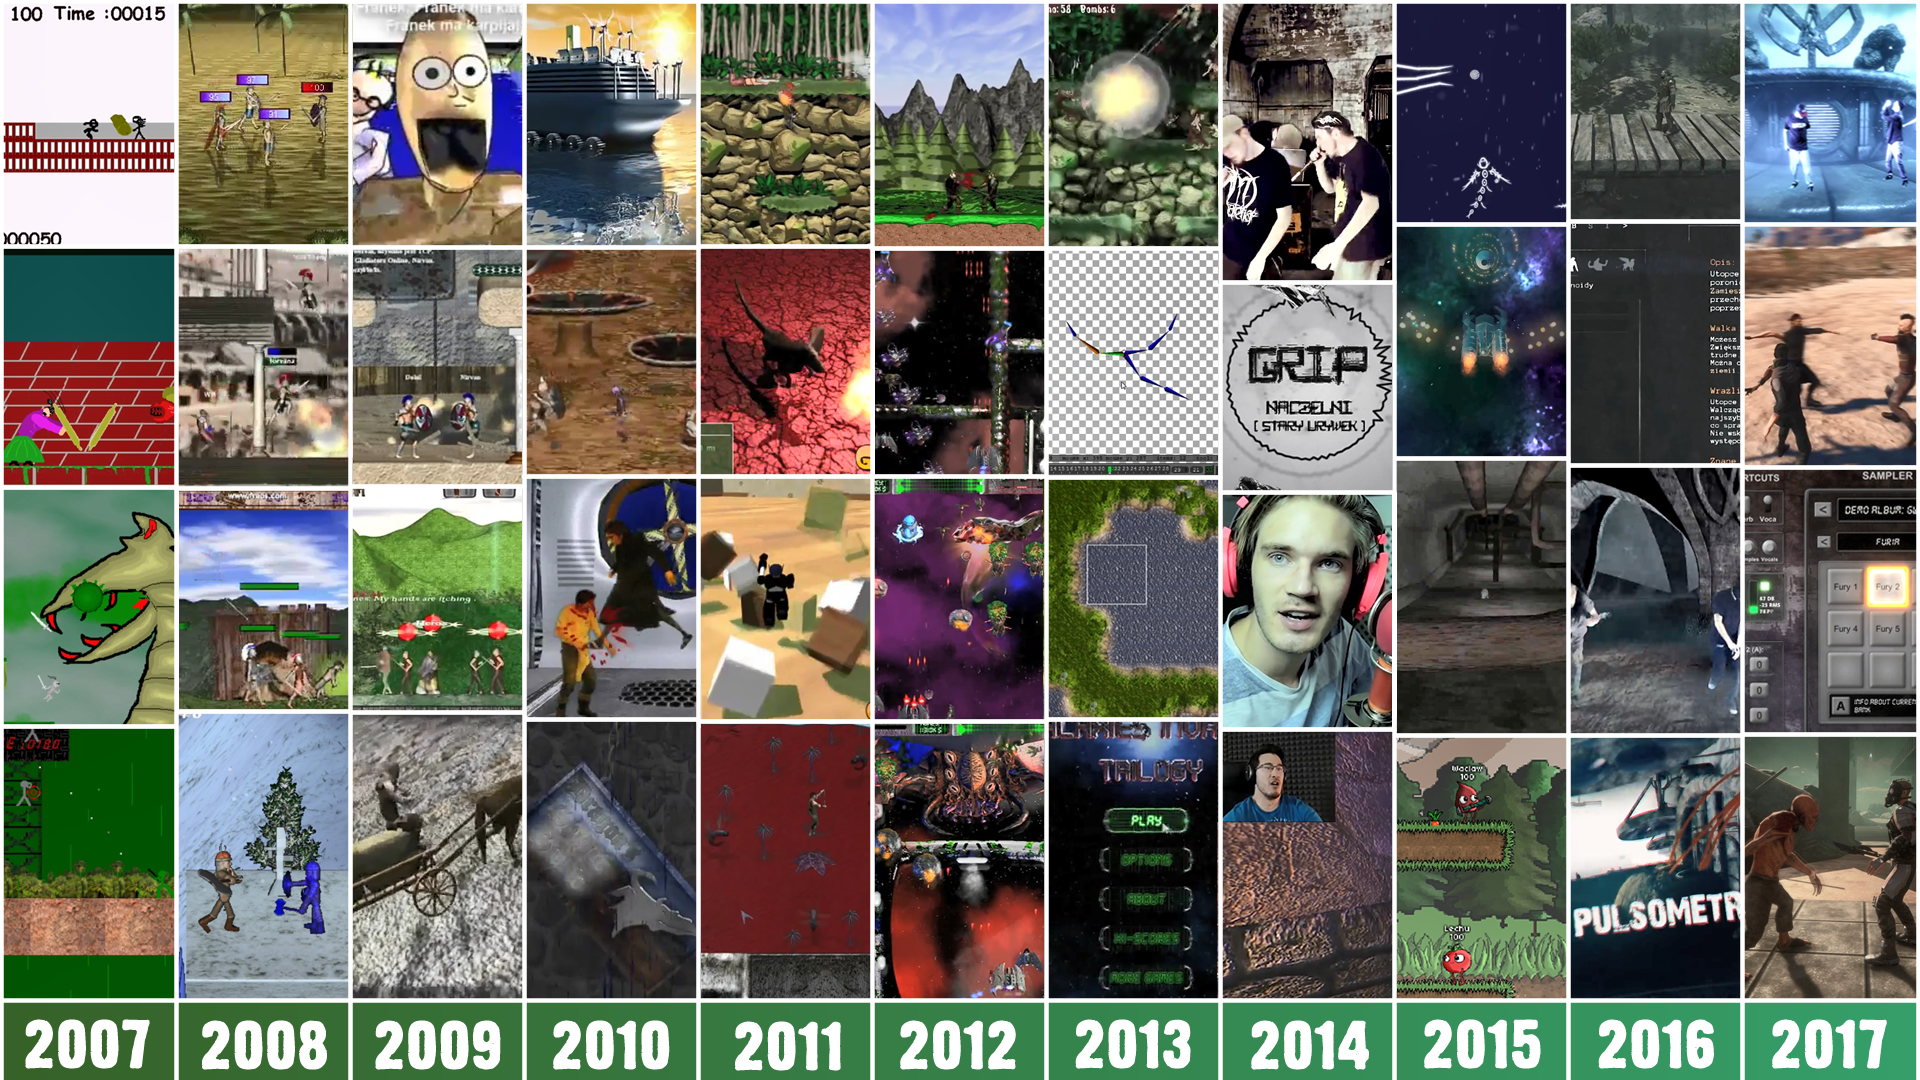 Gamedev journey since 2007